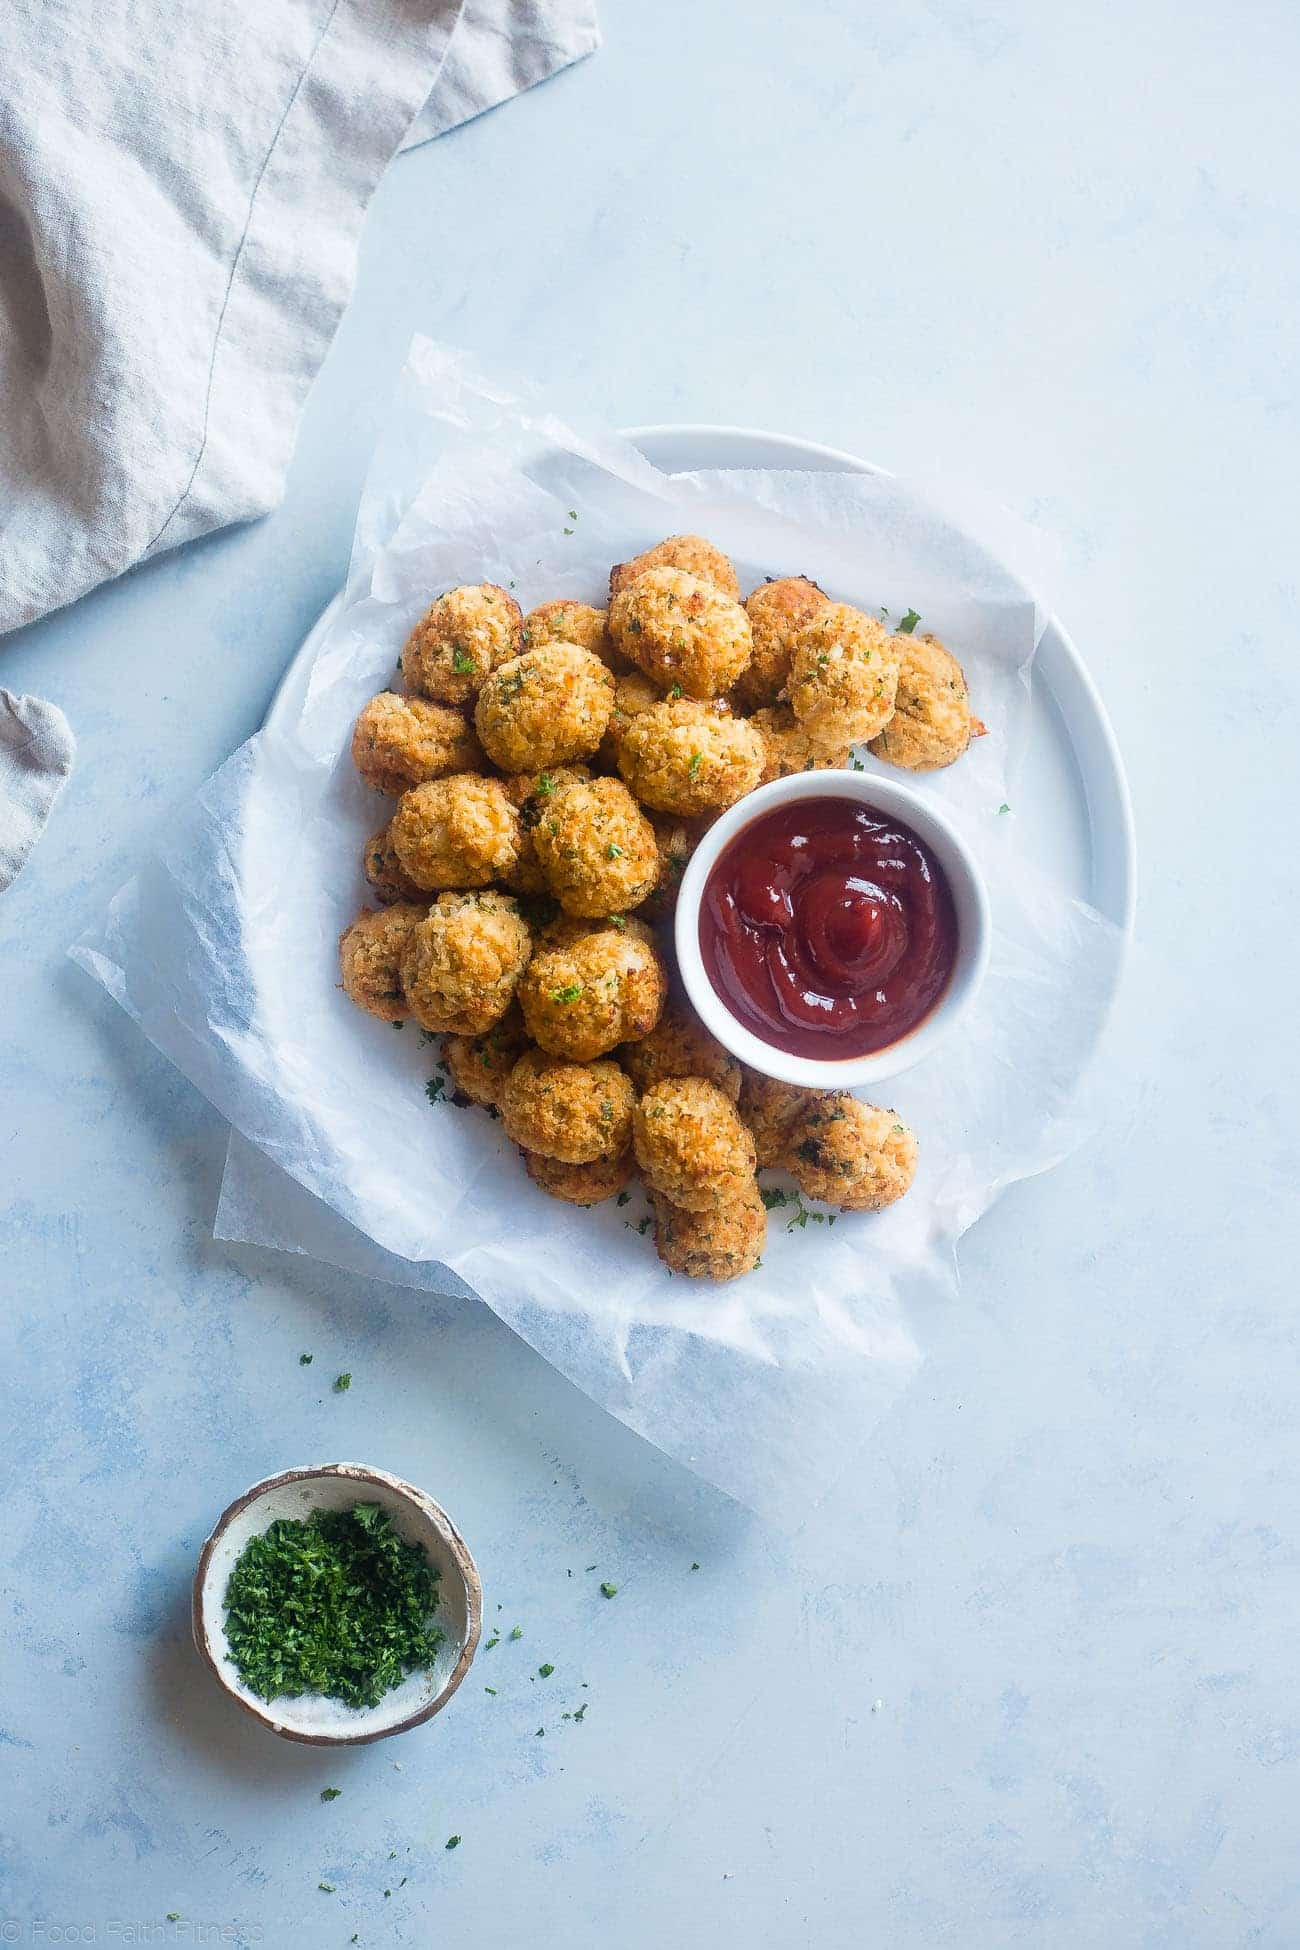 Baked Cauliflower Tater Tots - A gluten free, lower carb version of the classic comfort food that are crispy on the outside and soft on the inside. You'll never know they're healthy and made from hidden veggies! | Foodfaithfitness.com | @FoodFaithFit